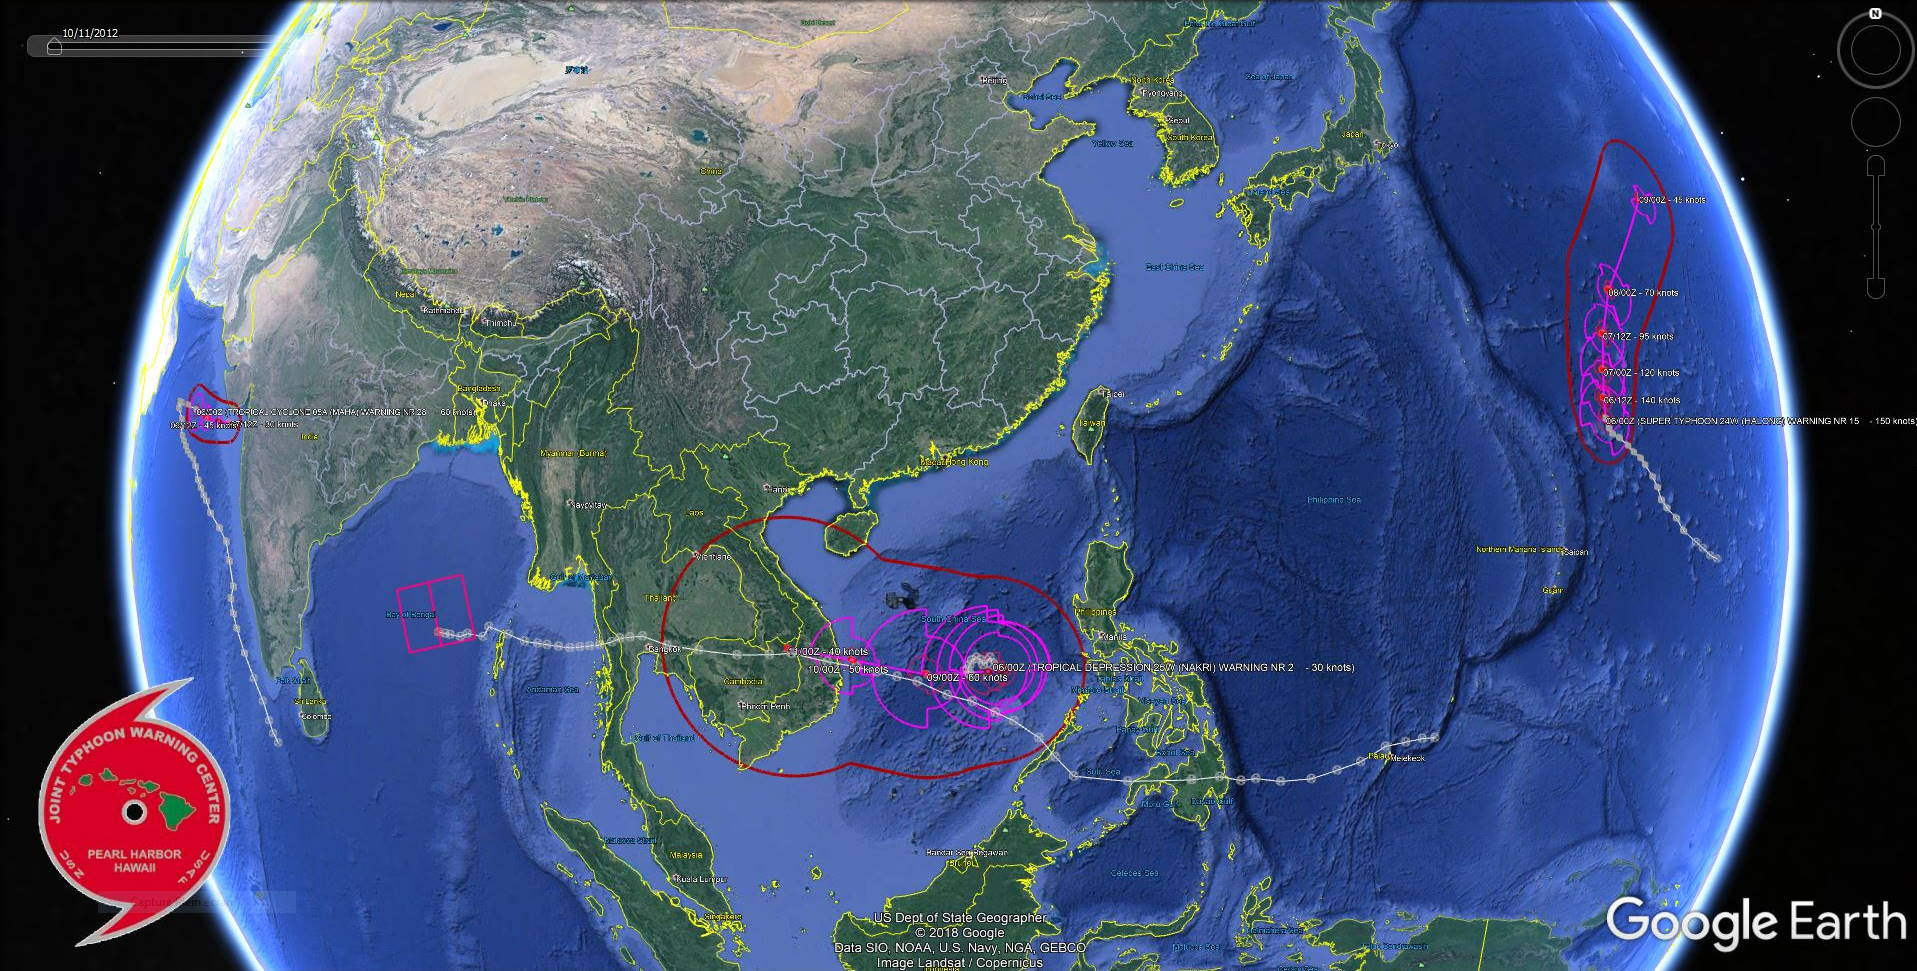 Busy: 4 systems being tracked. Halong(24W) still a Super Typhoon